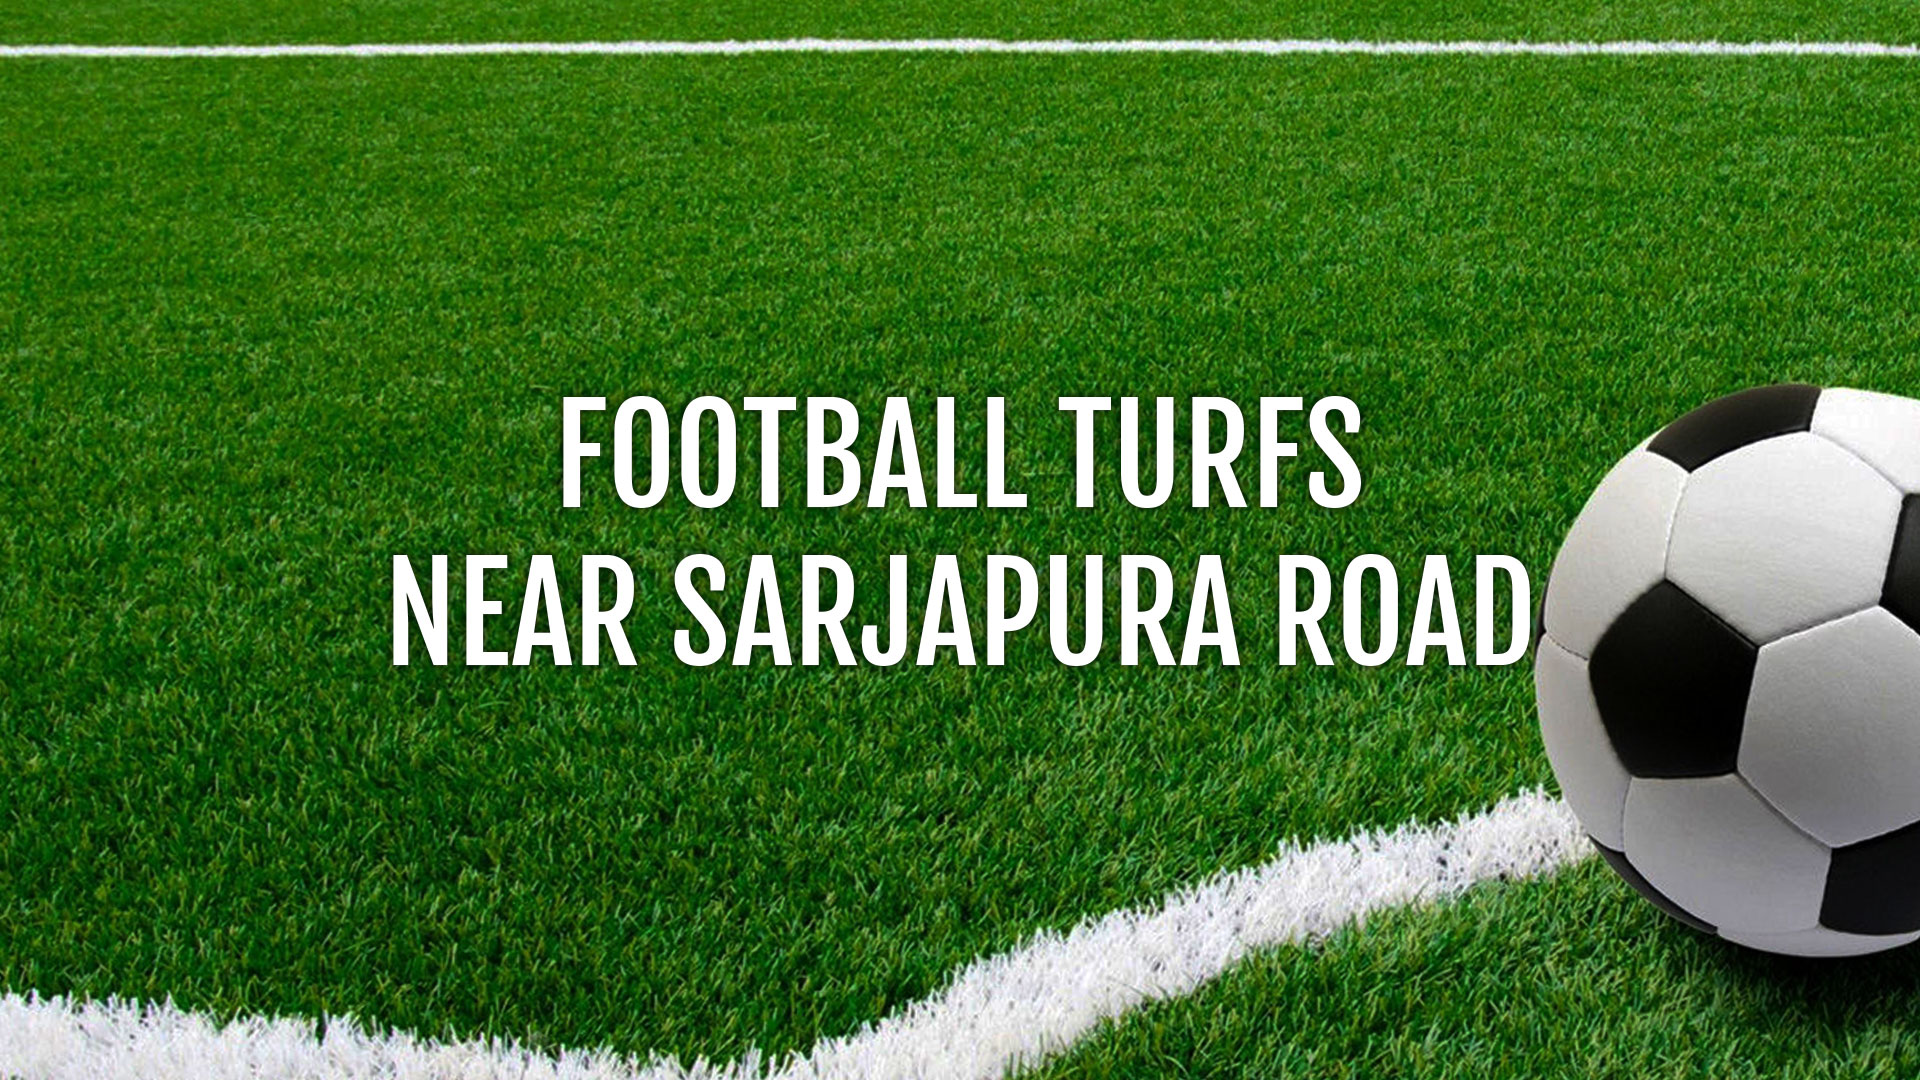 Football Turfs near Sarjapur